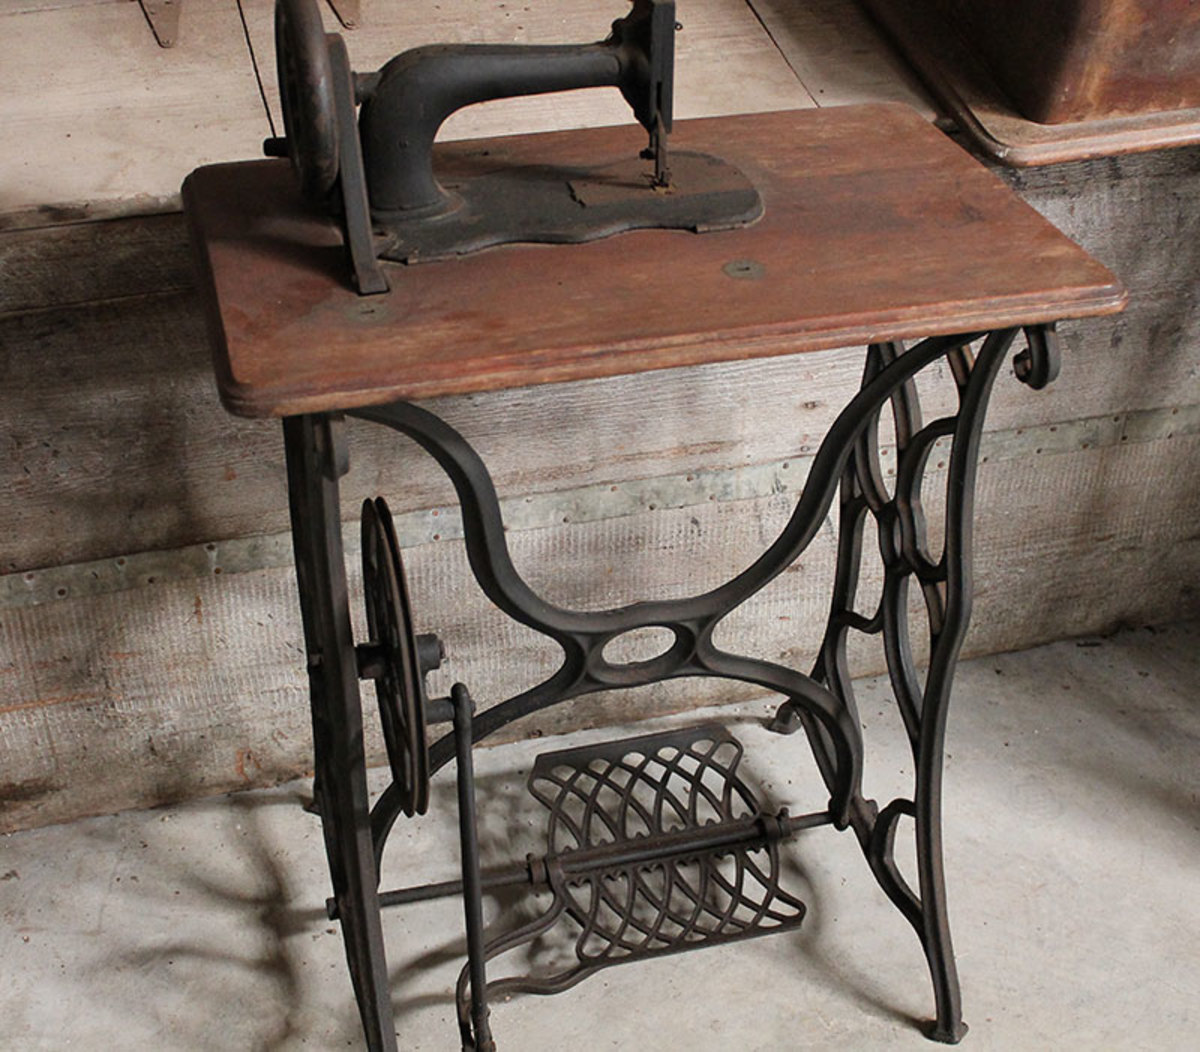 An older 1800s machine on a treadle stand.